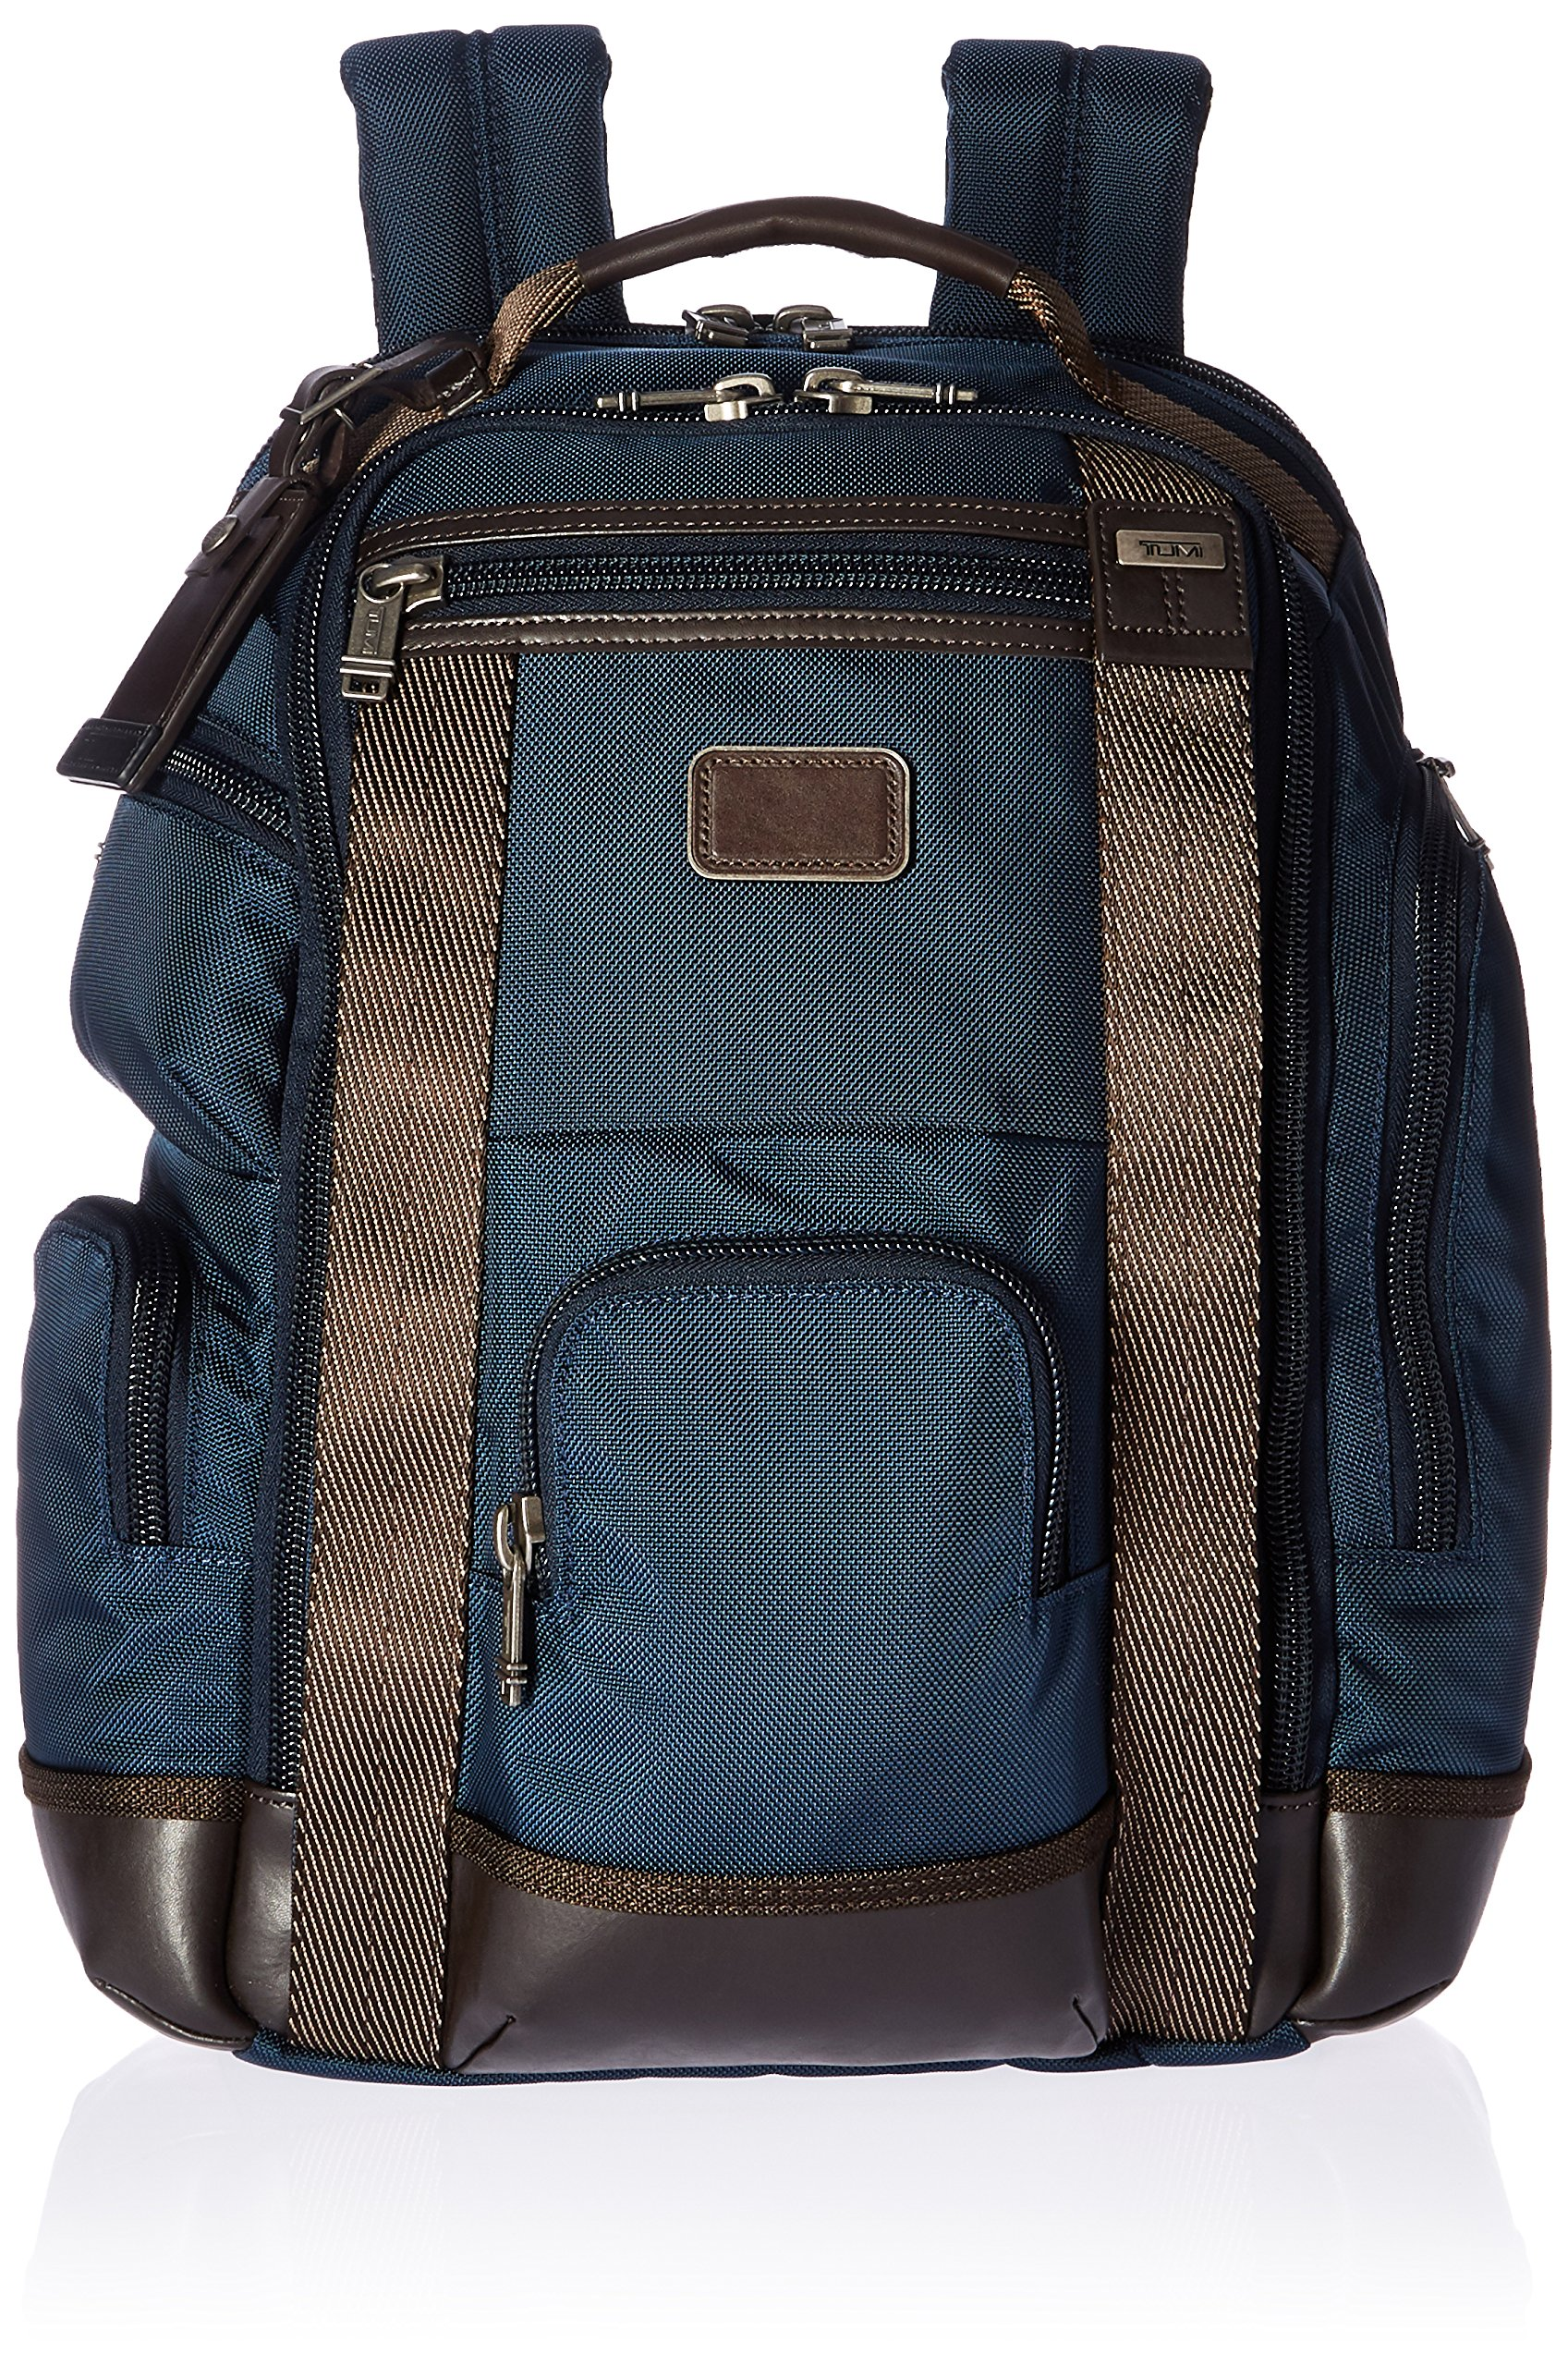 Tumi Alpha Bravo Shaw Deluxe Brief Pack, Navy by Tumi (Image #1)